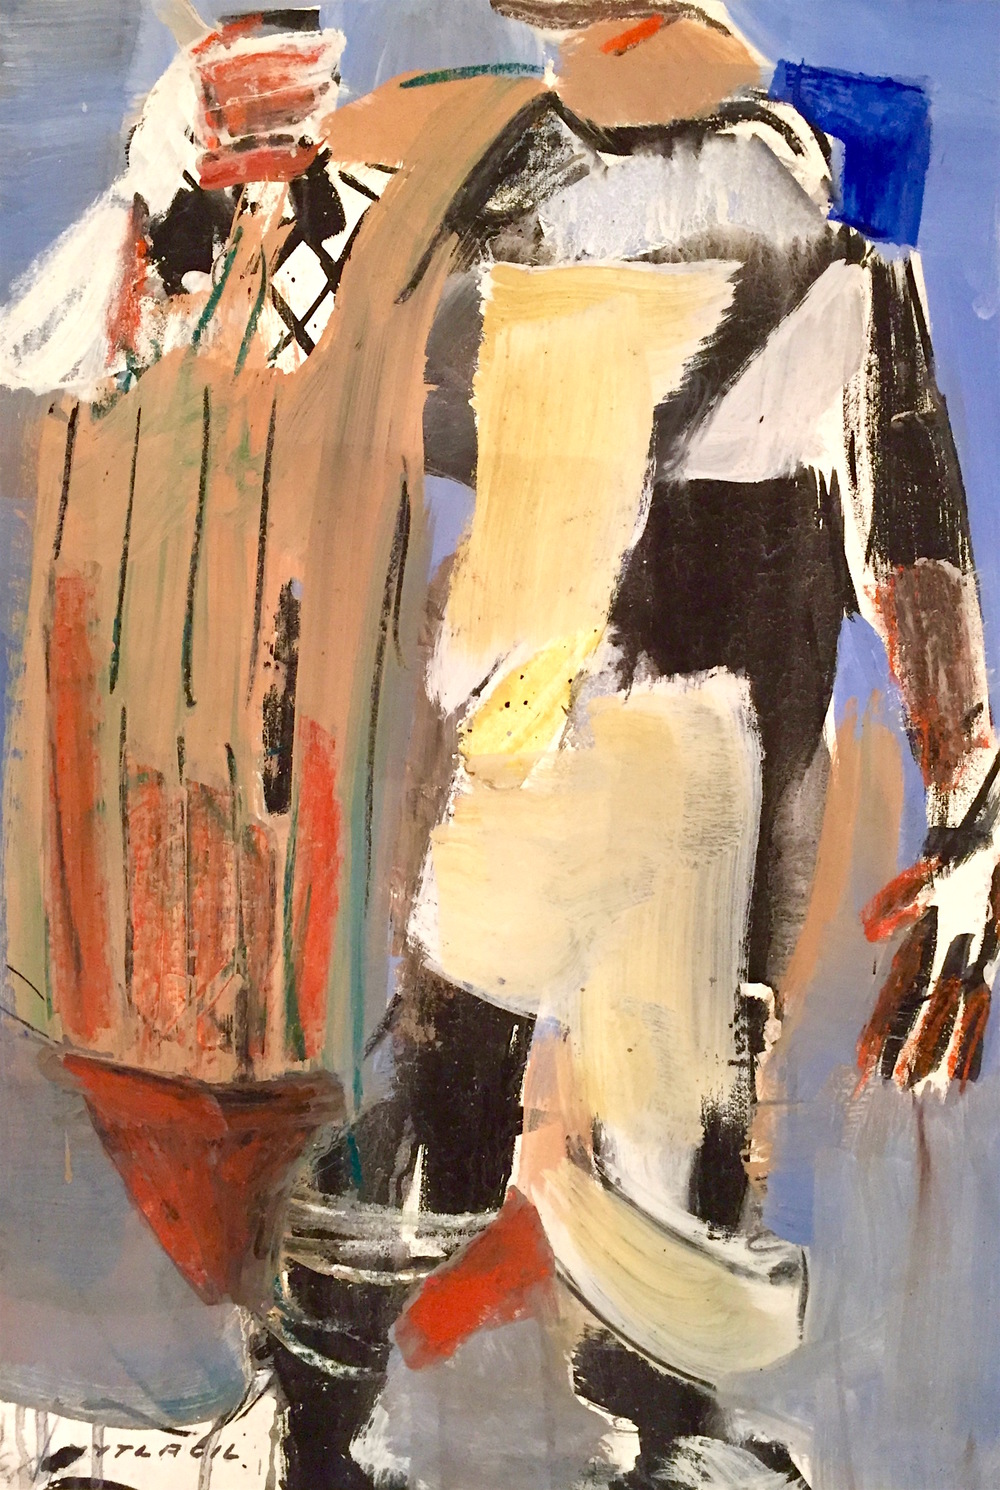 Fisherman   Medium: Paintings Size: 36 x 24 in. (91.4 x 61 cm.)  Markings: signed lower left